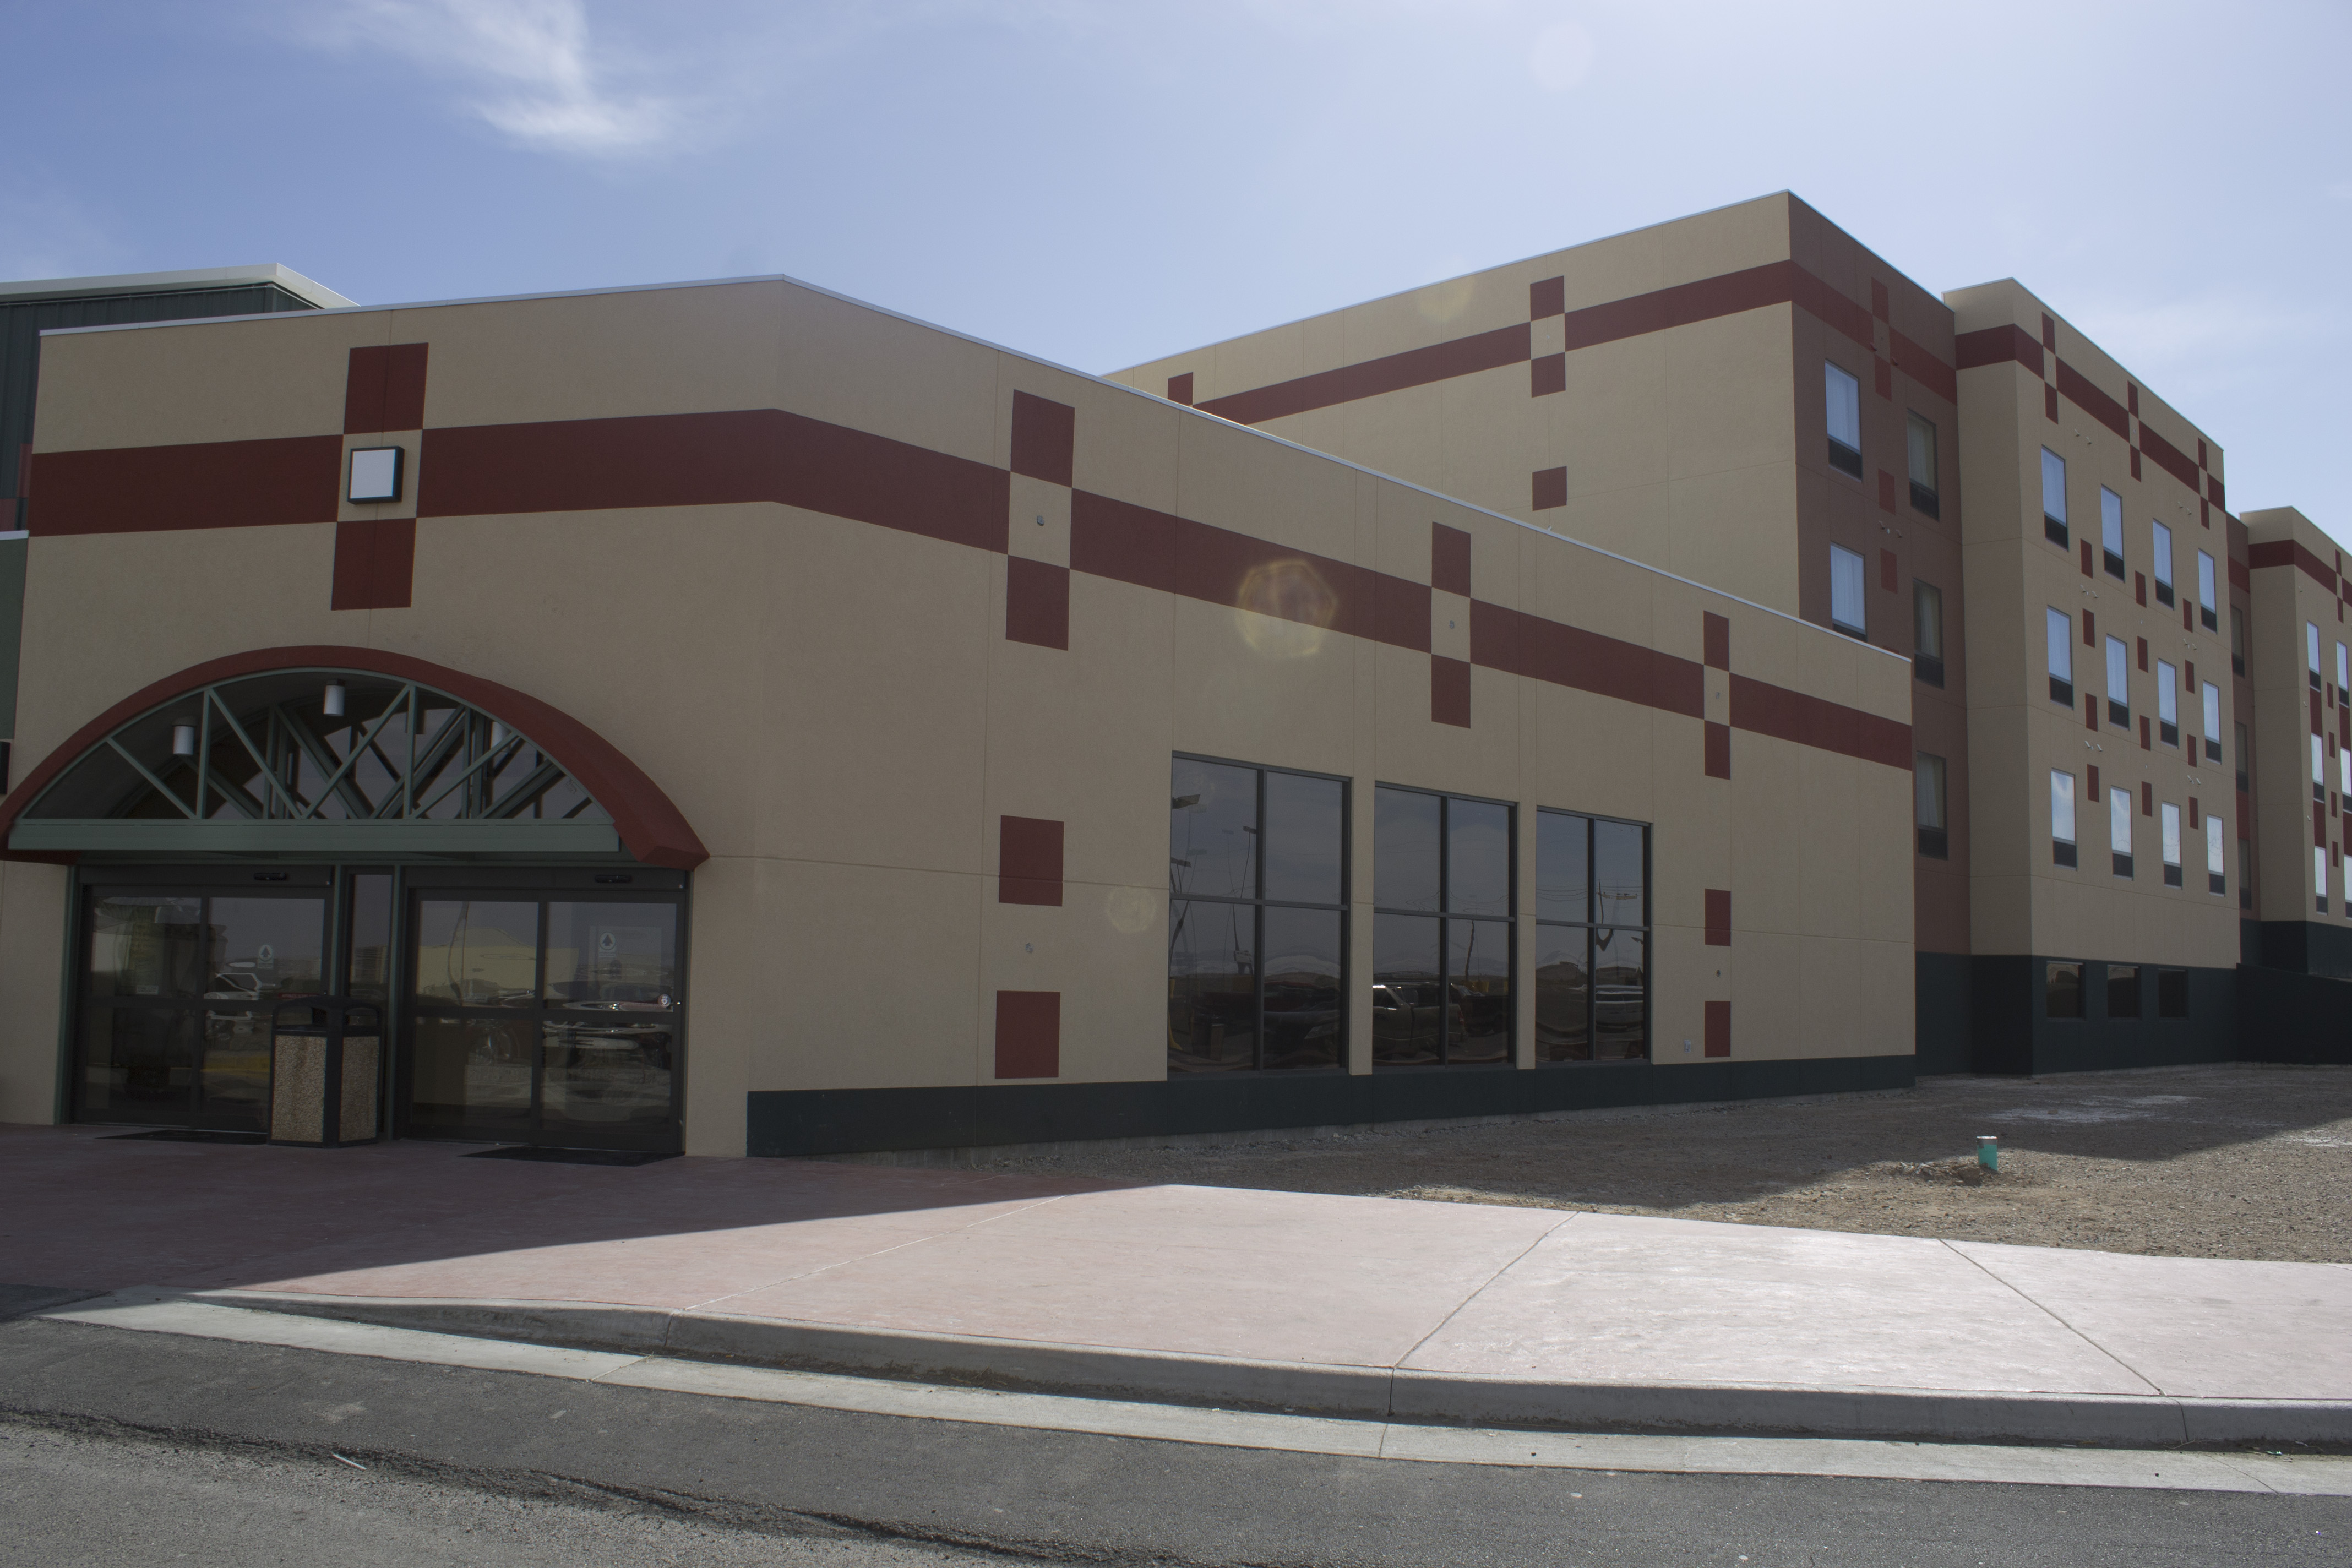 The Wind River Will Hold Its Ribbon Cutting Ceremony March 9 11 A M